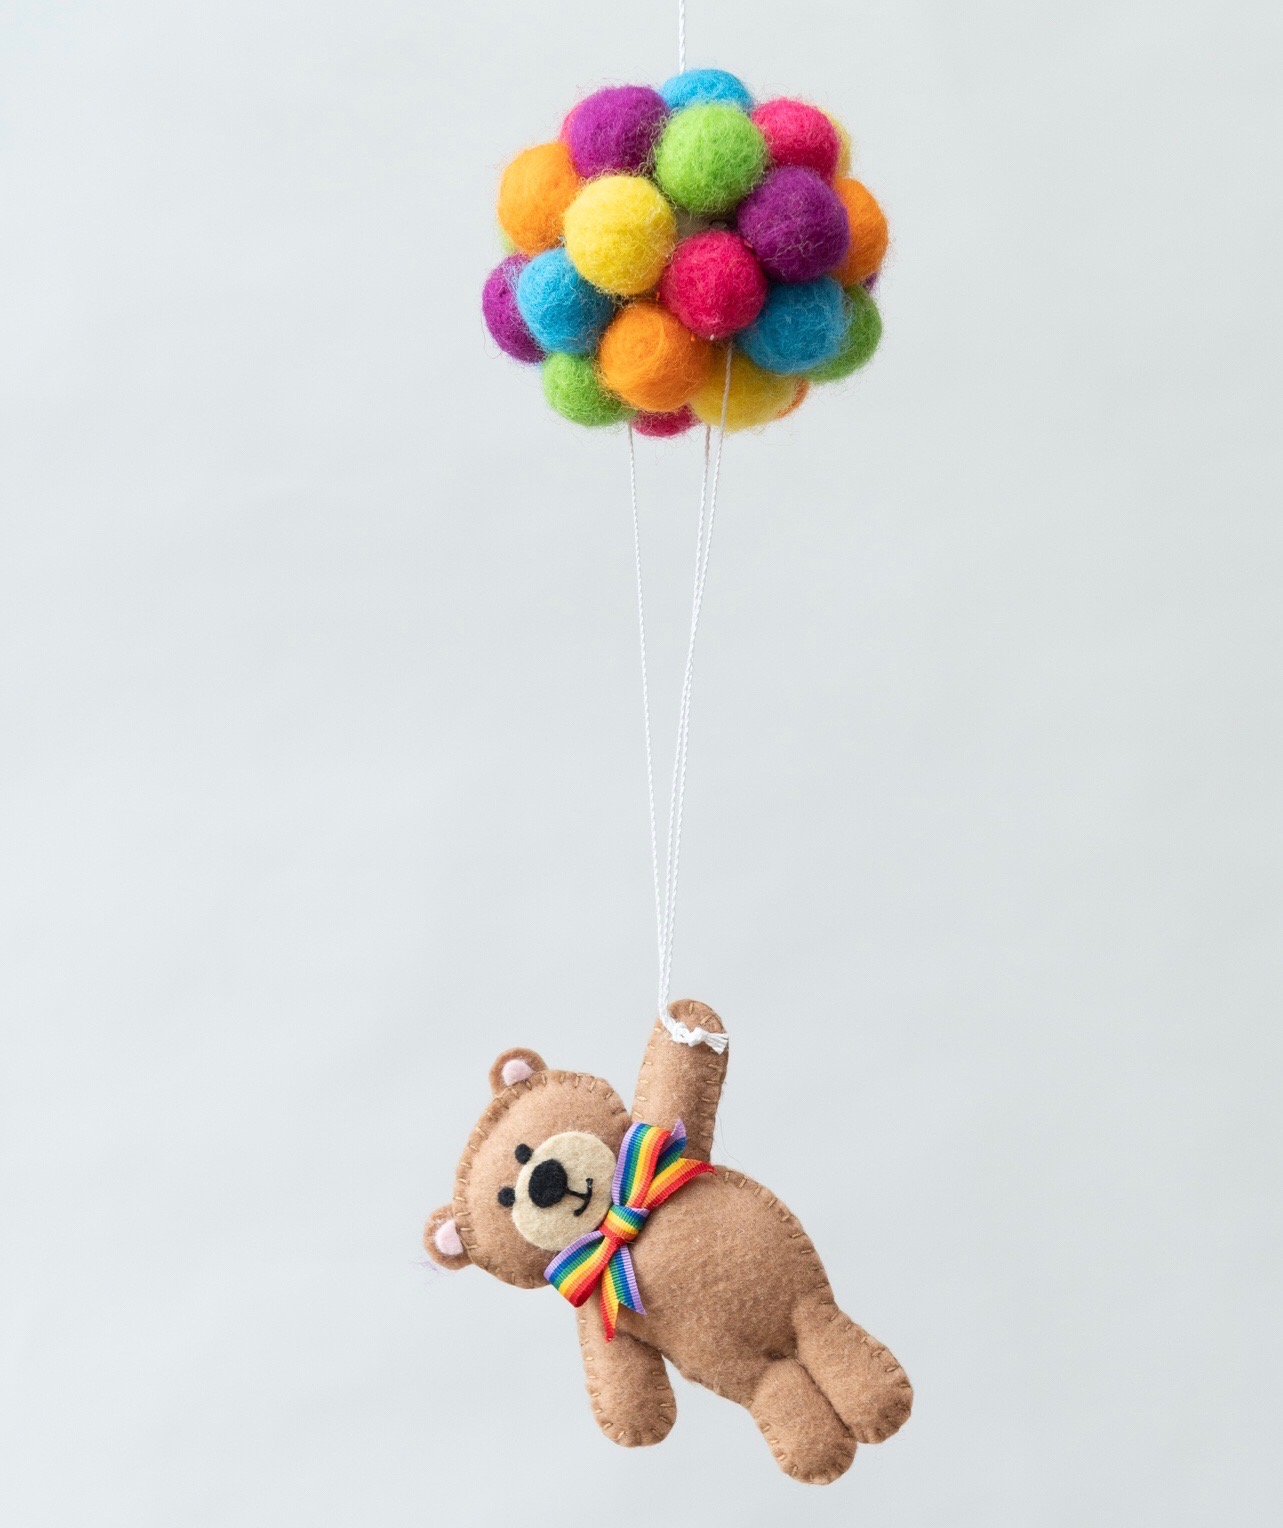 Children's Gift - Balloons & Bear Mobile